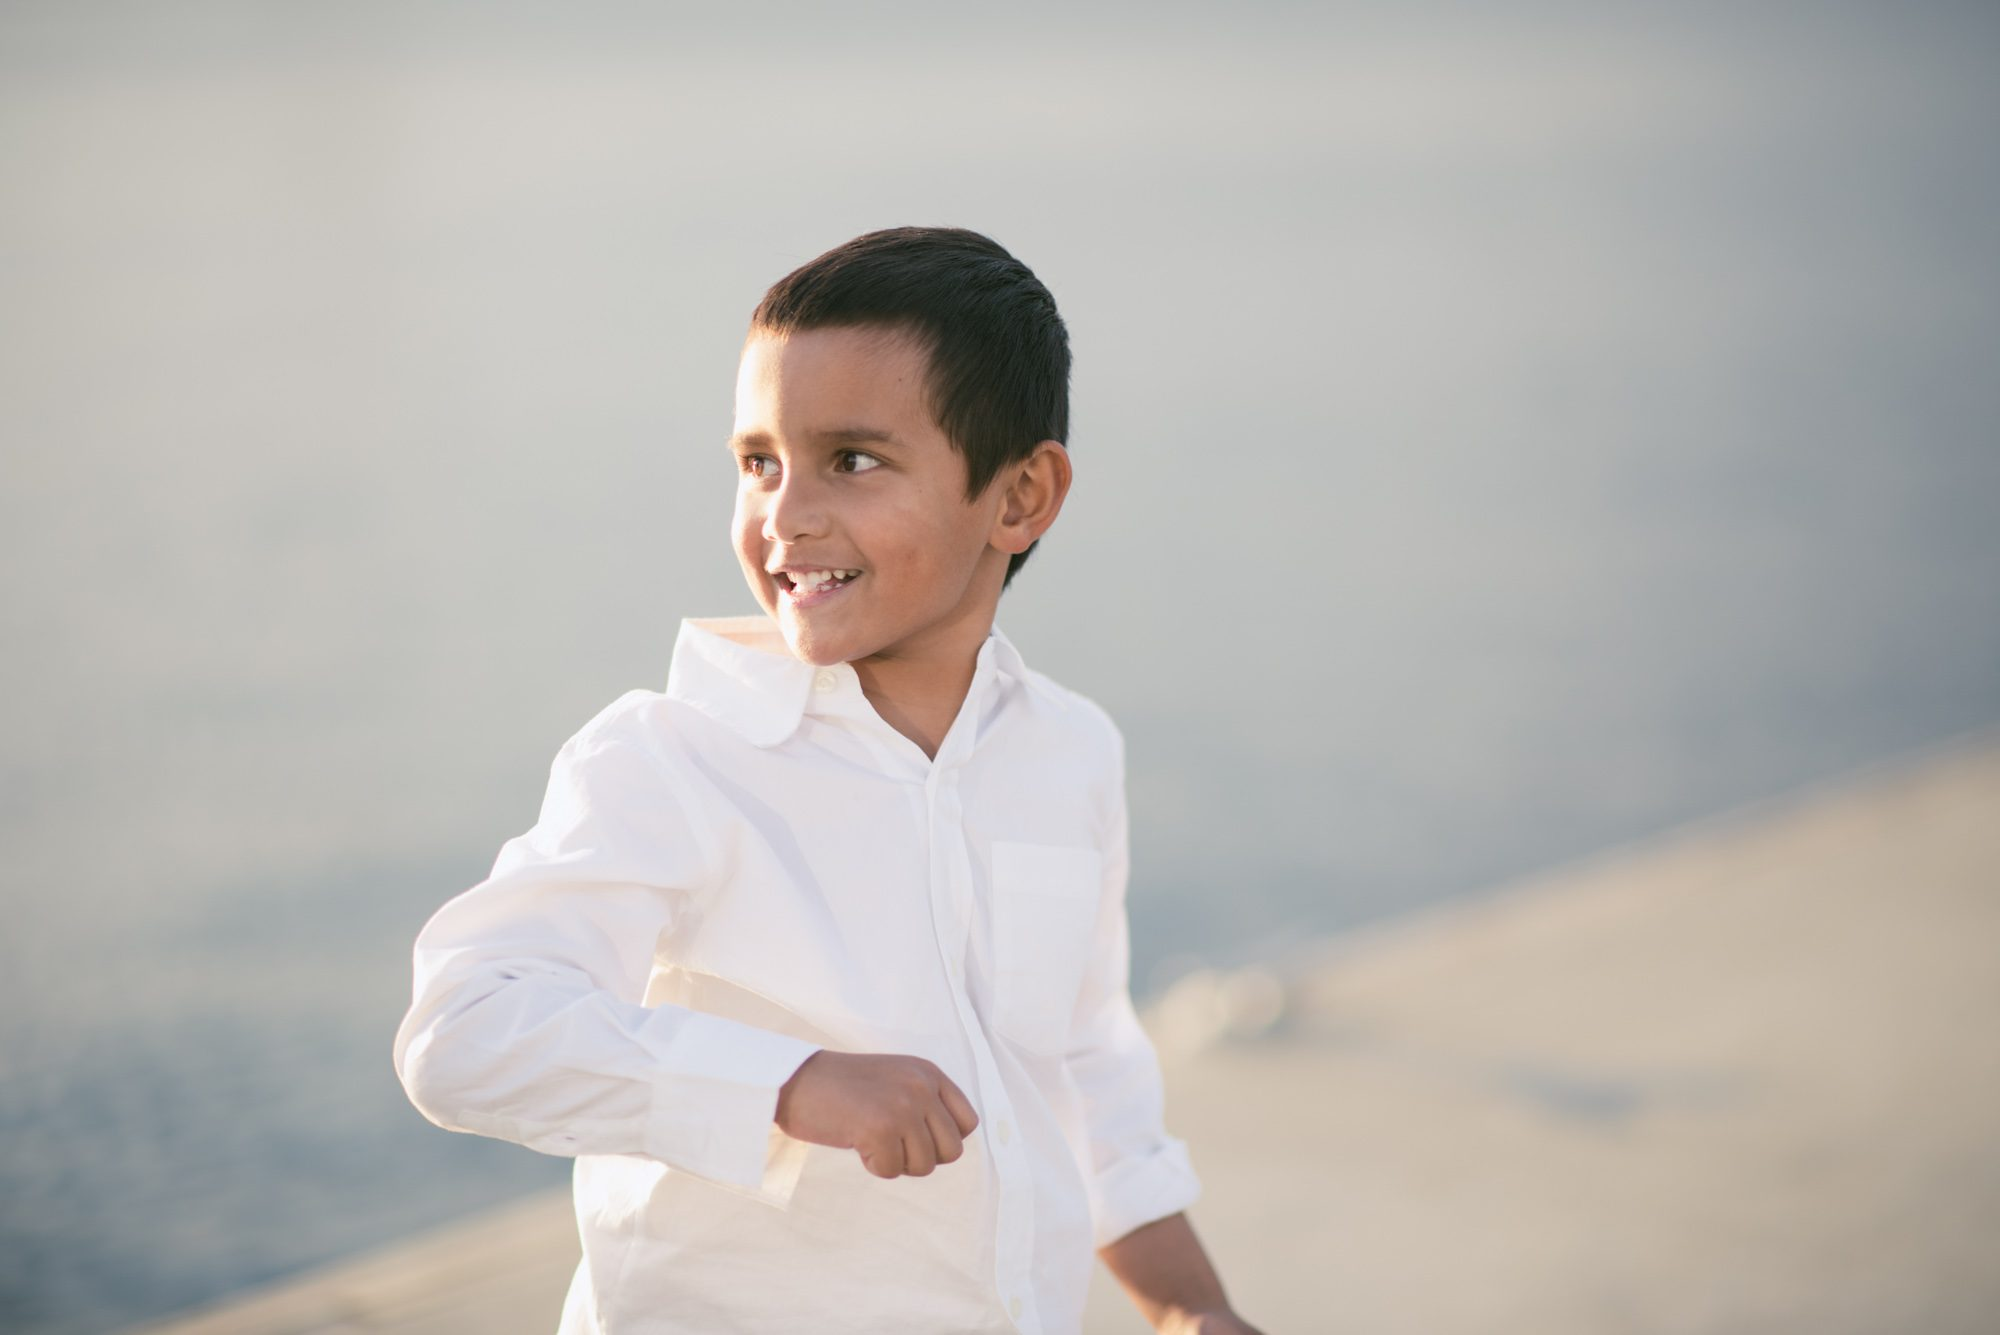 Cute boy in the sunlight - Melbourne Family photography.